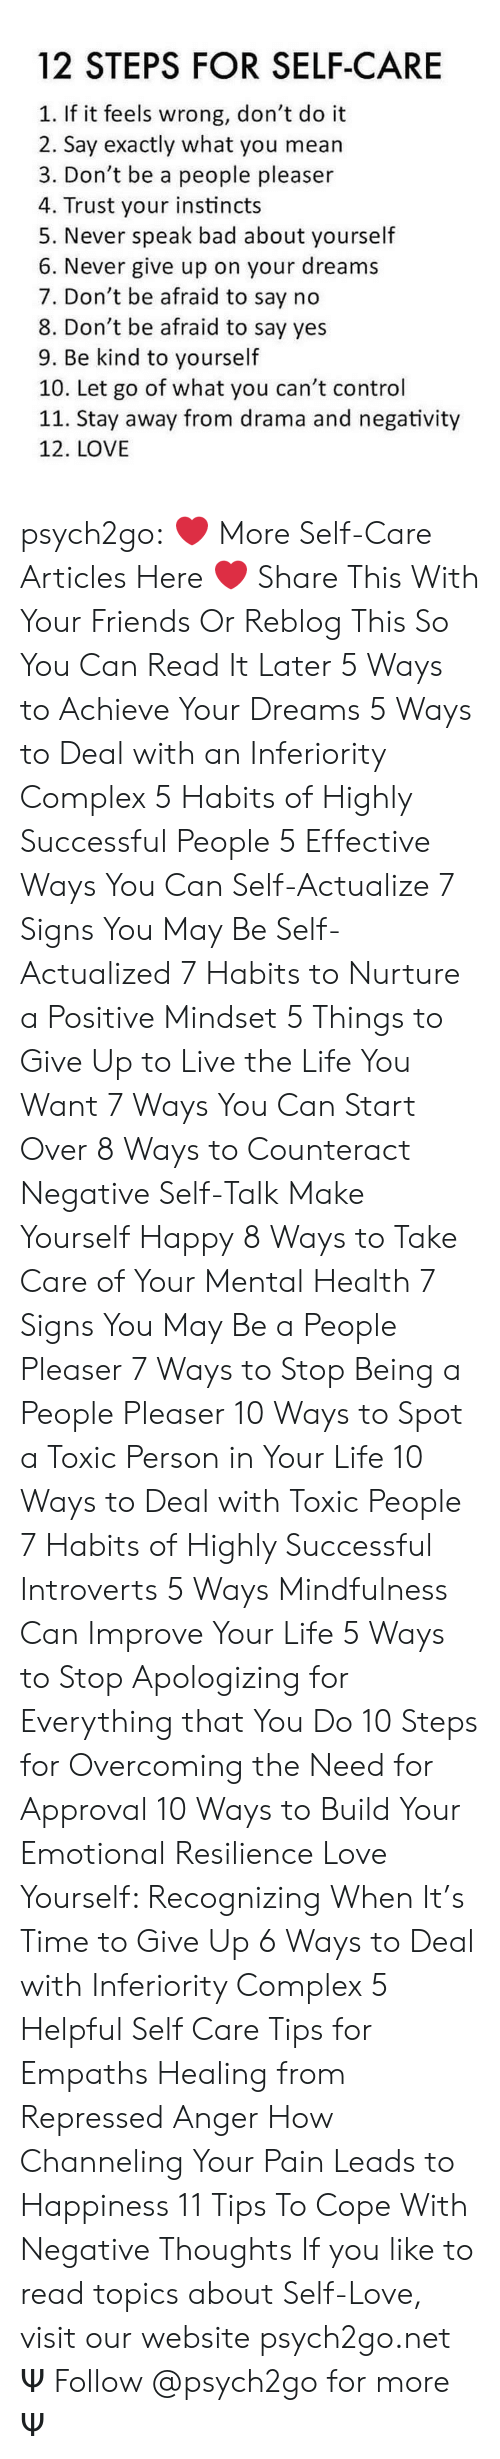 Bad, Complex, and Friends: 12 STEPS FOR SELF-CARE  1. If it feels wrong, don't do it  2. Say exactly what you mean  3. Don't be a people pleaser  4. Trust your instincts  5. Never speak bad about yourself  6. Never give up on your dreams  7. Don't be afraid to say no  8. Don't be afraid to say yes  9. Be kind to yourself  10. Let go of what you can't control  11. Stay away from drama and negativity  12. LOVE psych2go: ❤ More Self-Care Articles Here ❤ Share This With Your Friends Or Reblog This So You Can Read It Later 5 Ways to Achieve Your Dreams 5 Ways to Deal with an Inferiority Complex 5 Habits of Highly Successful People 5 Effective Ways You Can Self-Actualize 7 Signs You May Be Self-Actualized 7 Habits to Nurture a Positive Mindset 5 Things to Give Up to Live the Life You Want 7 Ways You Can Start Over 8 Ways to Counteract Negative Self-Talk Make Yourself Happy 8 Ways to Take Care of Your Mental Health 7 Signs You May Be a People Pleaser 7 Ways to Stop Being a People Pleaser 10 Ways to Spot a Toxic Person in Your Life 10 Ways to Deal with Toxic People 7 Habits of Highly Successful Introverts 5 Ways Mindfulness Can Improve Your Life 5 Ways to Stop Apologizing for Everything that You Do 10 Steps for Overcoming the Need for Approval 10 Ways to Build Your Emotional Resilience Love Yourself: Recognizing When It's Time to Give Up 6 Ways to Deal with Inferiority Complex 5 Helpful Self Care Tips for Empaths Healing from Repressed Anger How Channeling Your Pain Leads to Happiness 11 Tips To Cope With Negative Thoughts If you like to read topics about Self-Love, visit our website psych2go.net Ψ Follow @psych2go​ for more Ψ